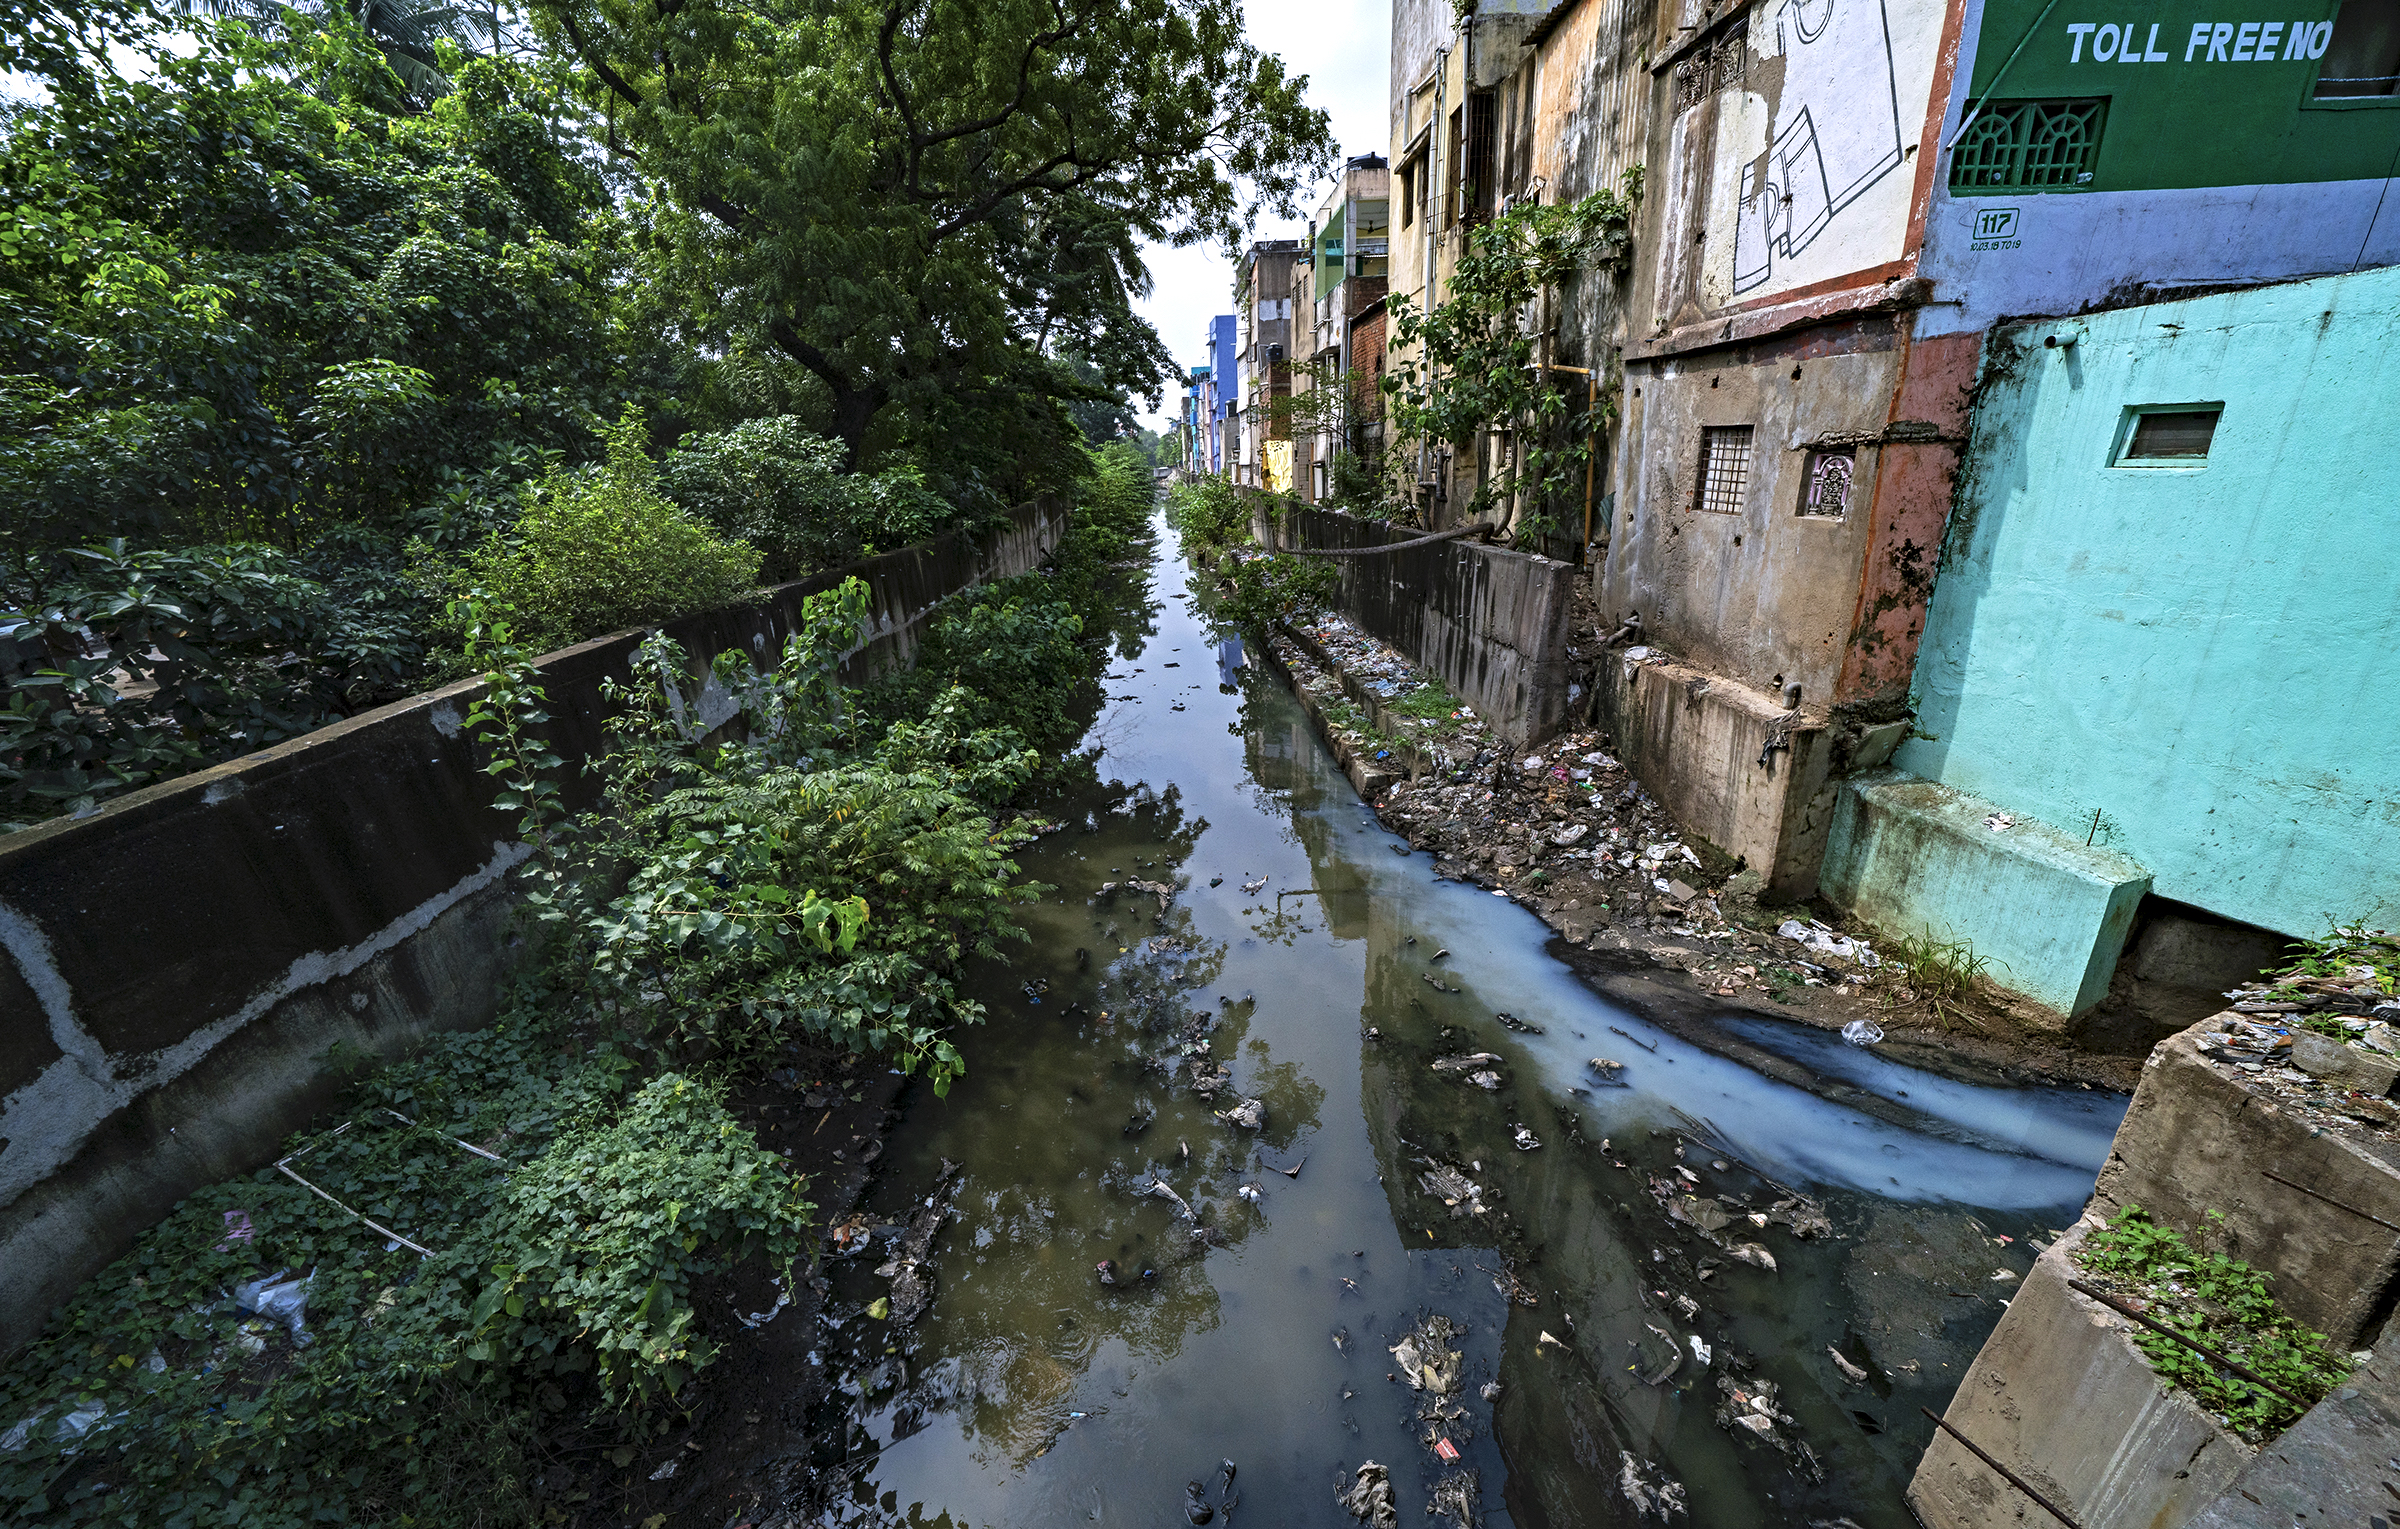 Stormwater as well as garbage and sewage collect in Chennai's Mambalam Canal.